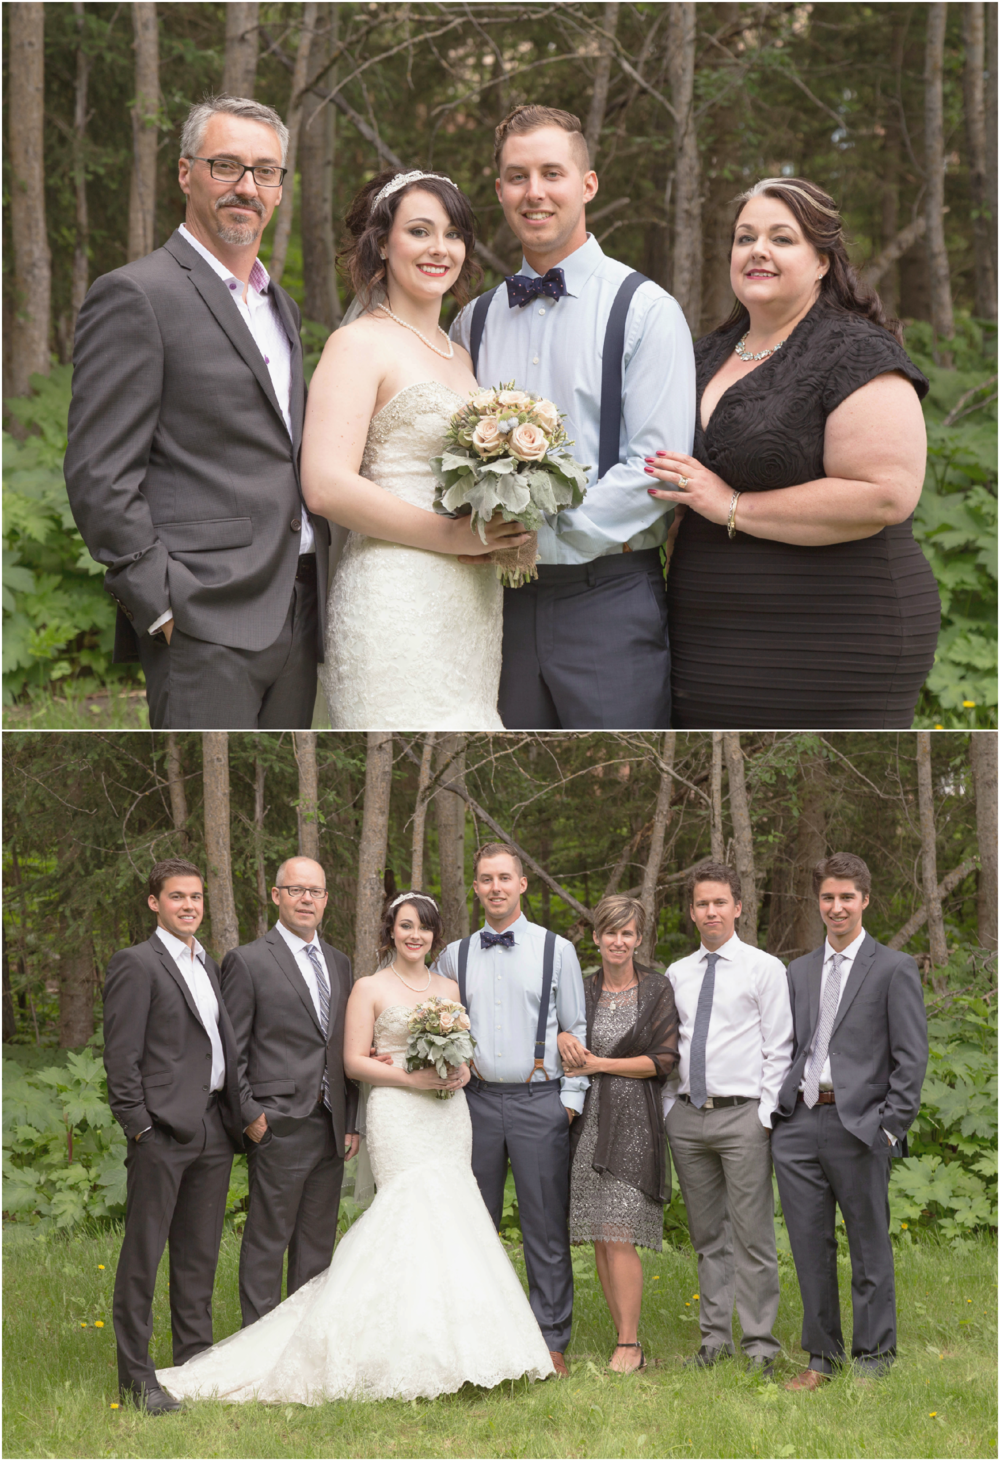 elkwater_wedding_photography_21.png